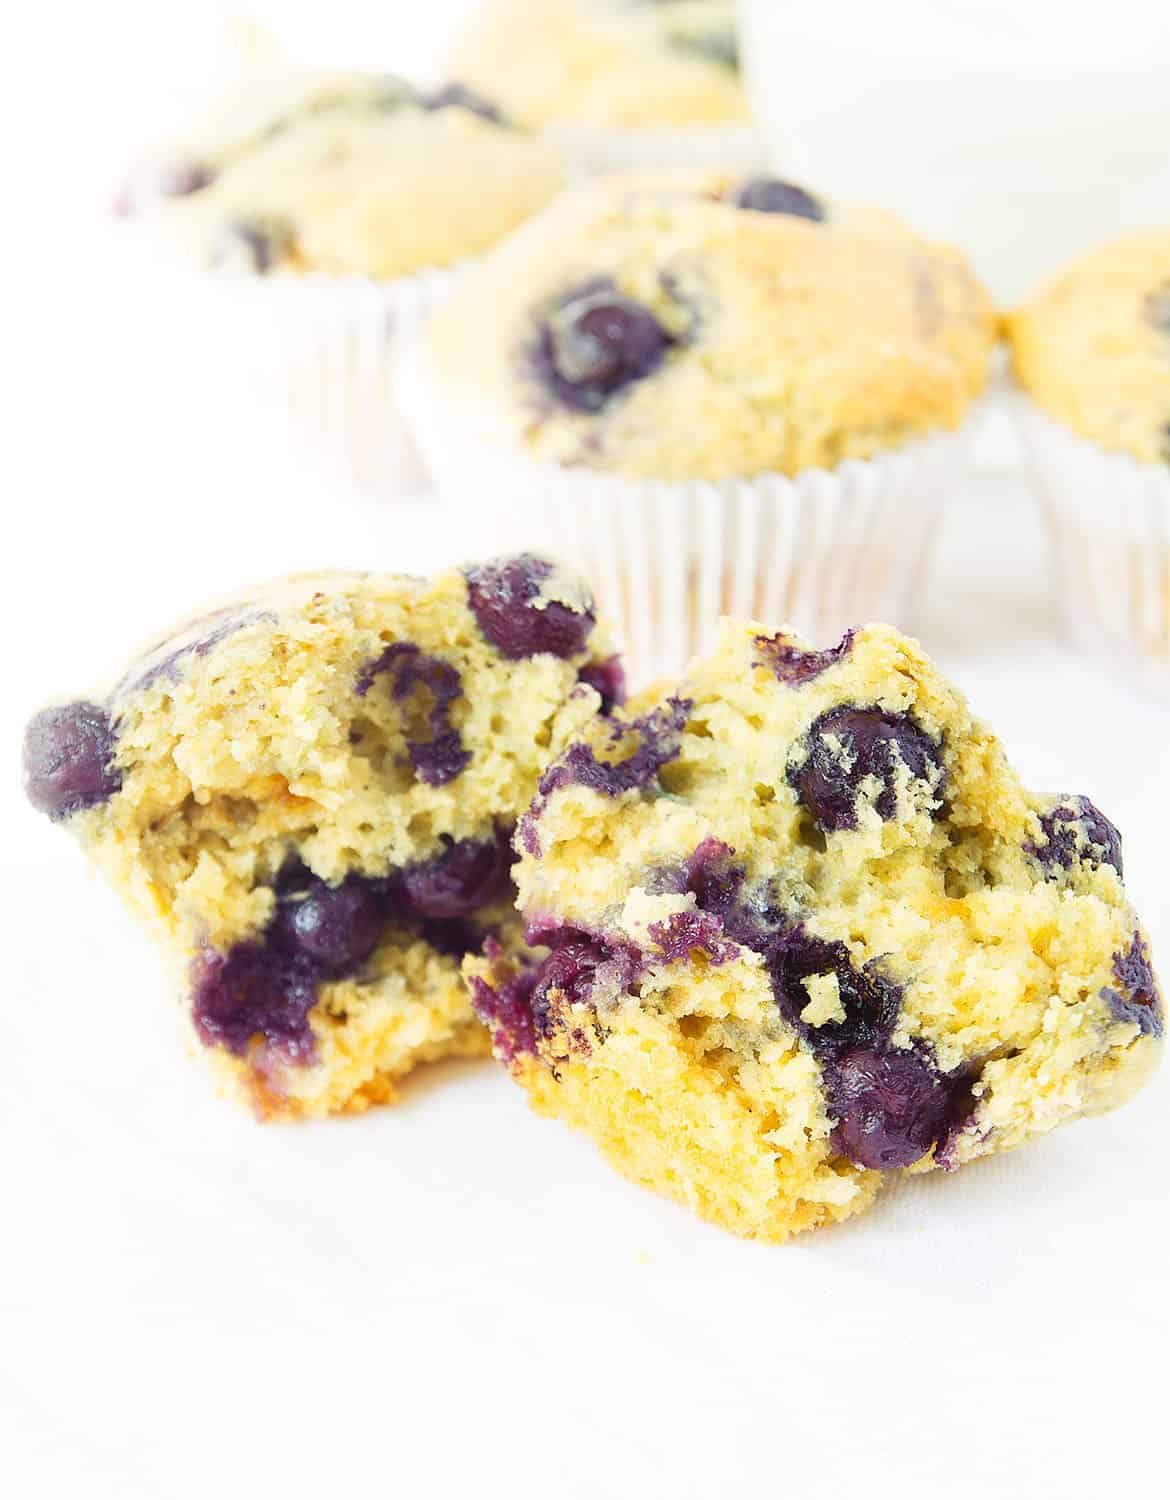 These fluffy and juicy lemon blueberry muffins are the perfect way to start your mornings, they make a great and healthy treat so easy to make from scratch!